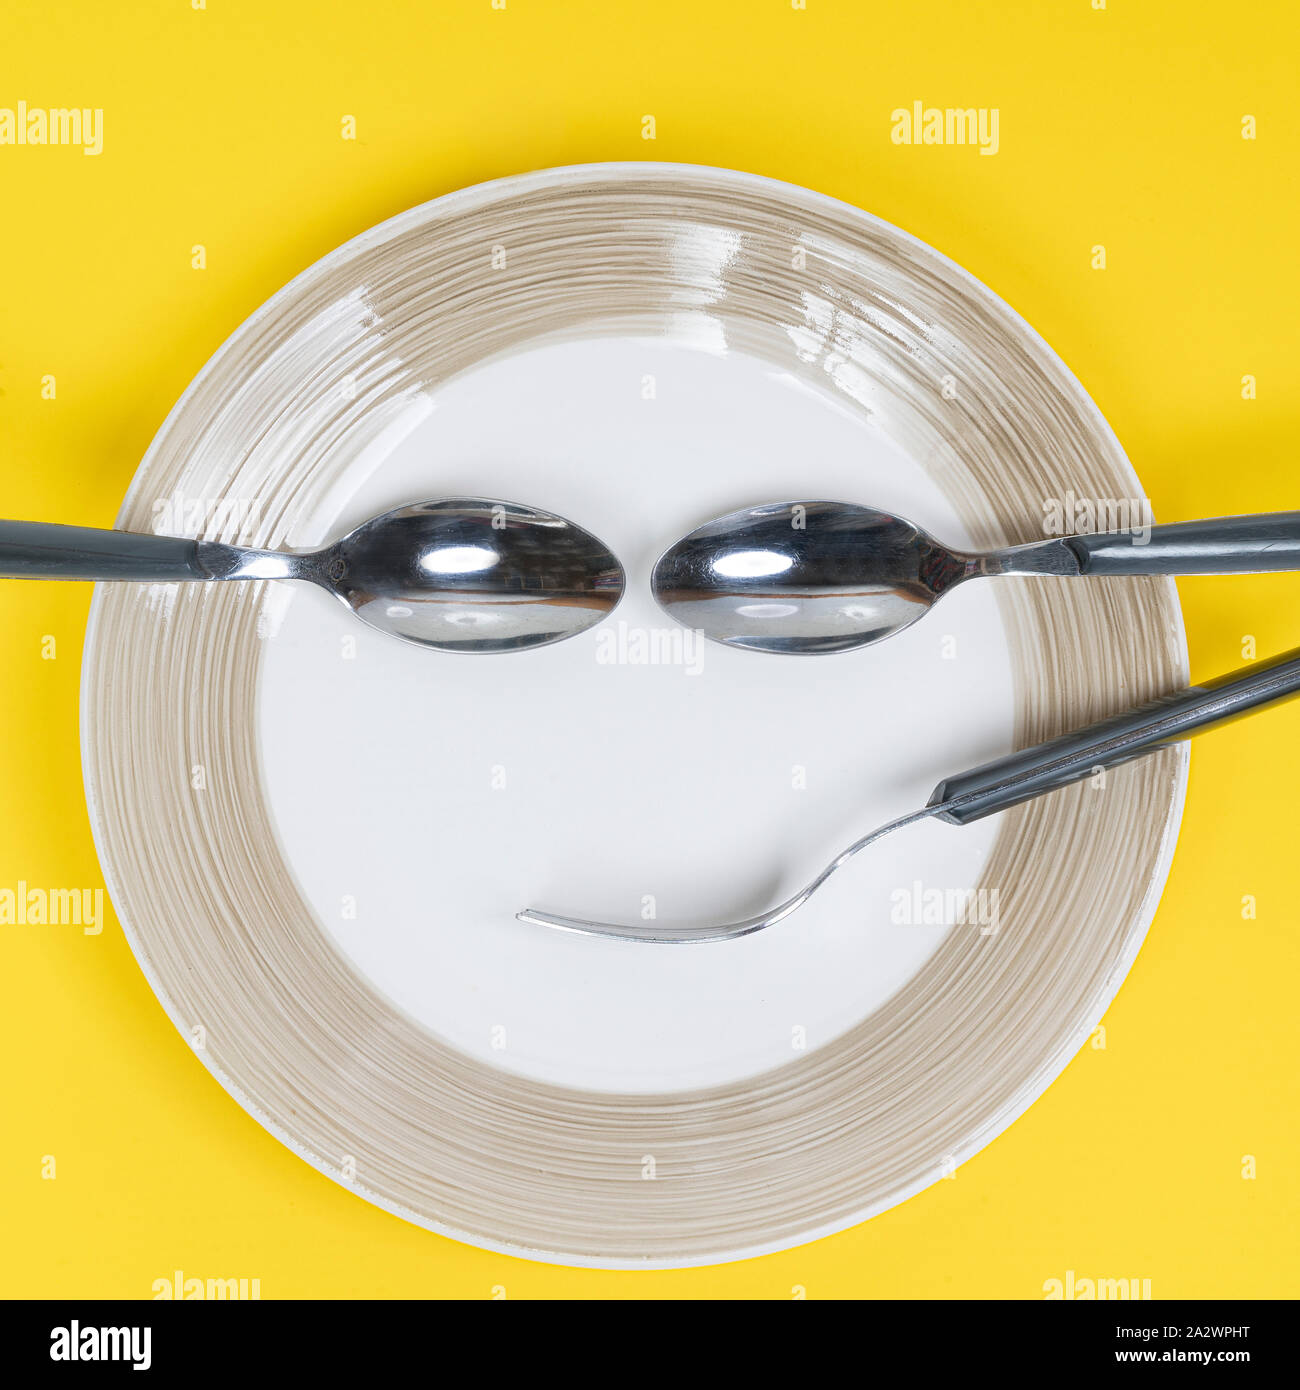 the crockery placed on the plate to form a smiling face Stock Photo